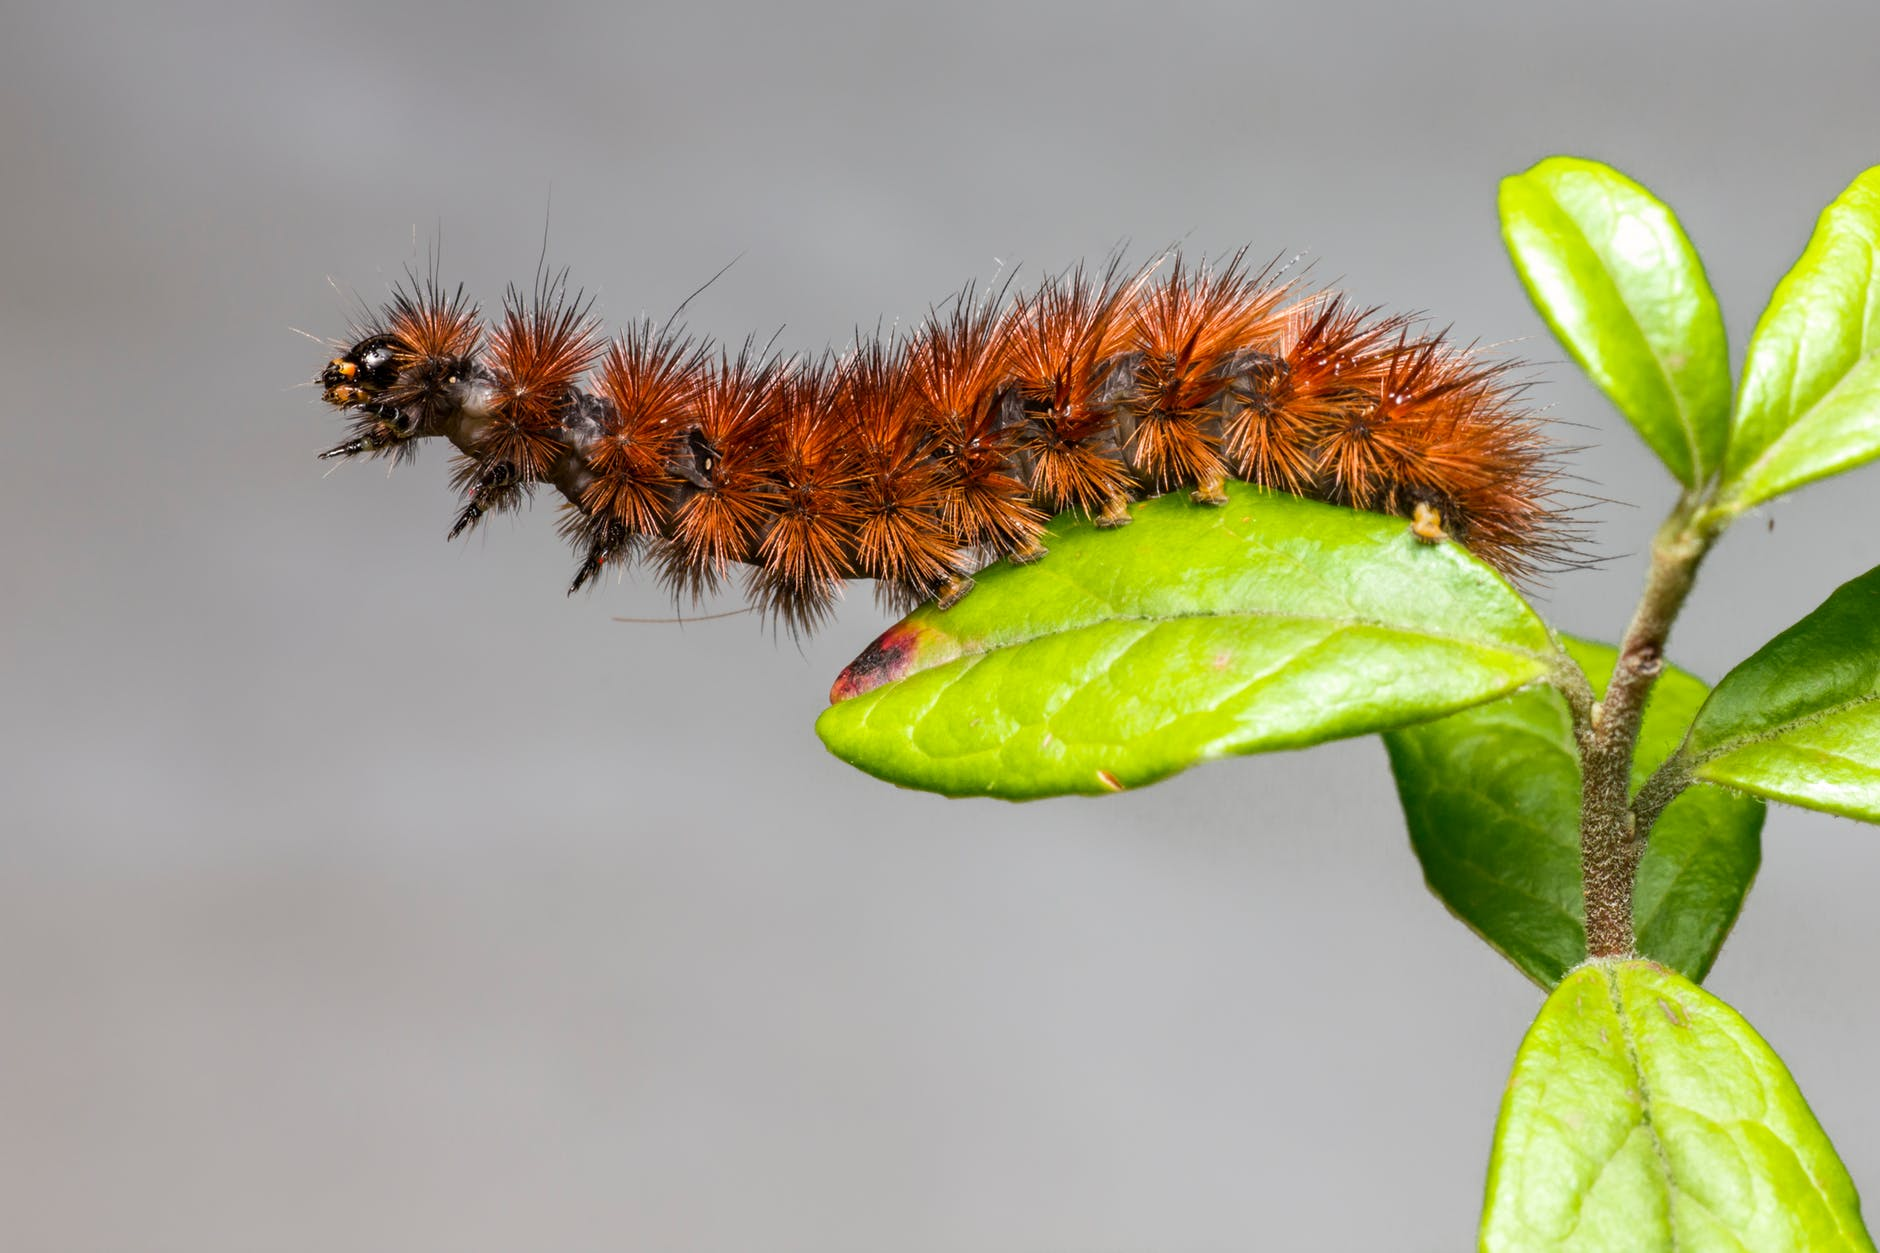 brown caterpillar on green leaf